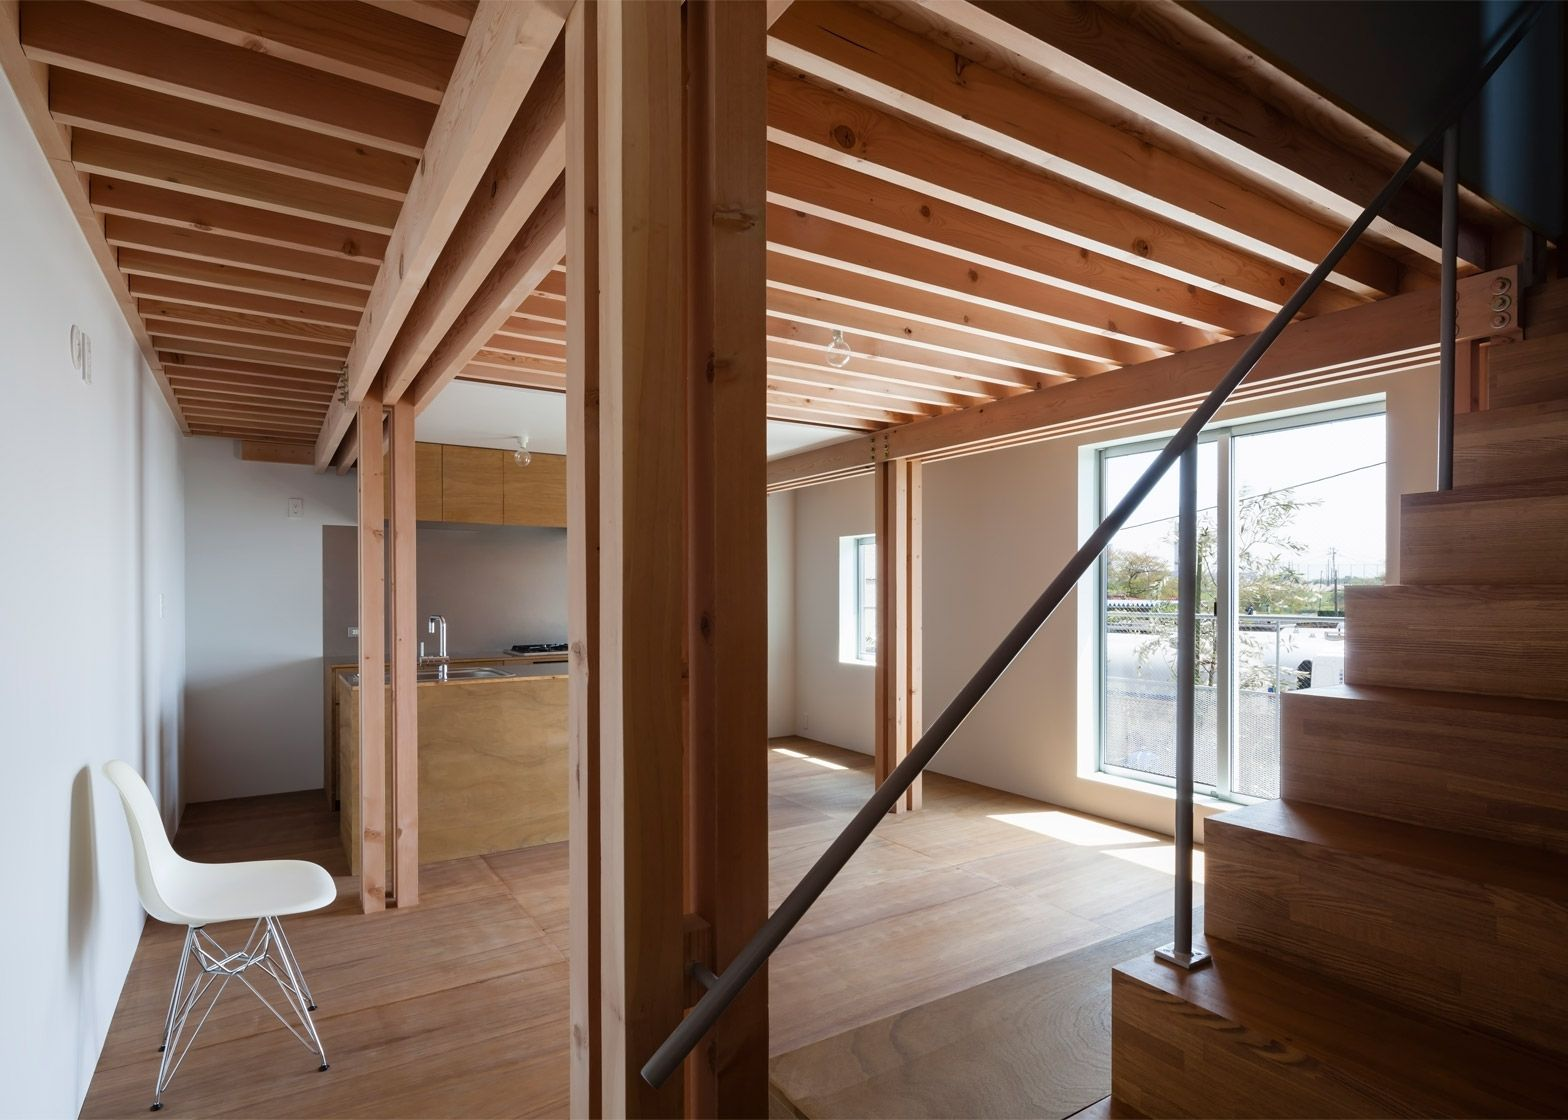 FT Architects 4 Columns house features a timber frame Columns